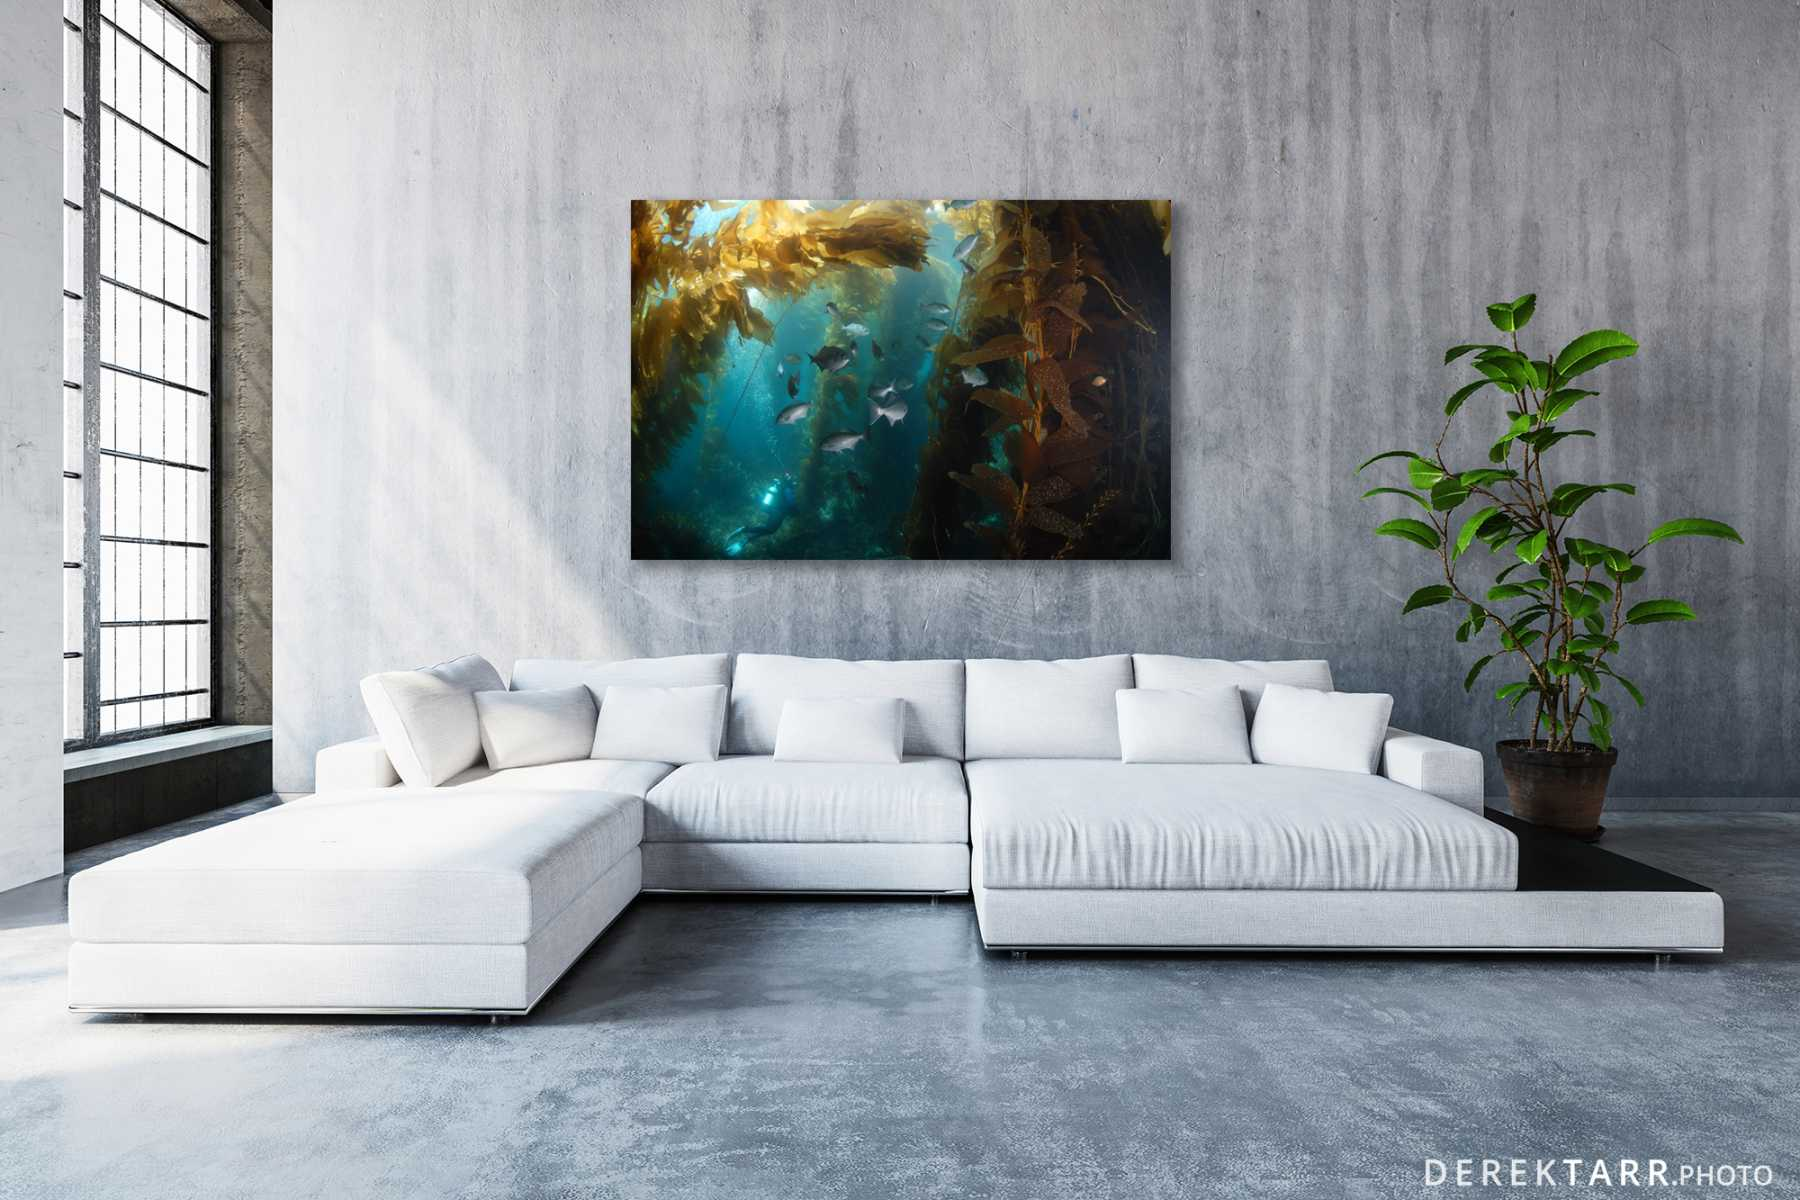 Modern living room with Halfmoons in the Kelp on the wall